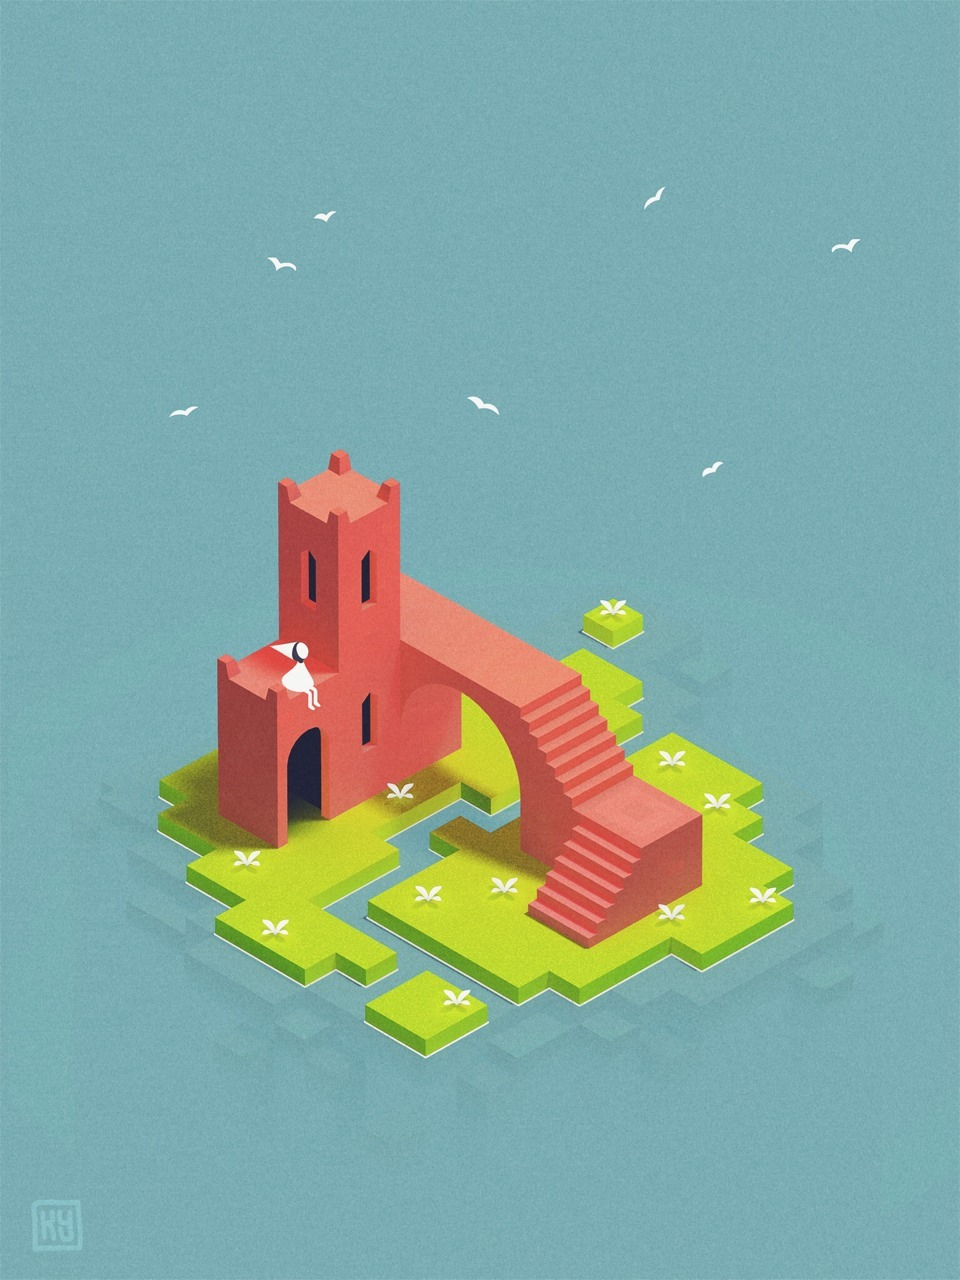 I finished Monument Valley yesterday. It meant so much to me that I just had to fan art a bit. Here's Ida chilling out on a little island in the sun.